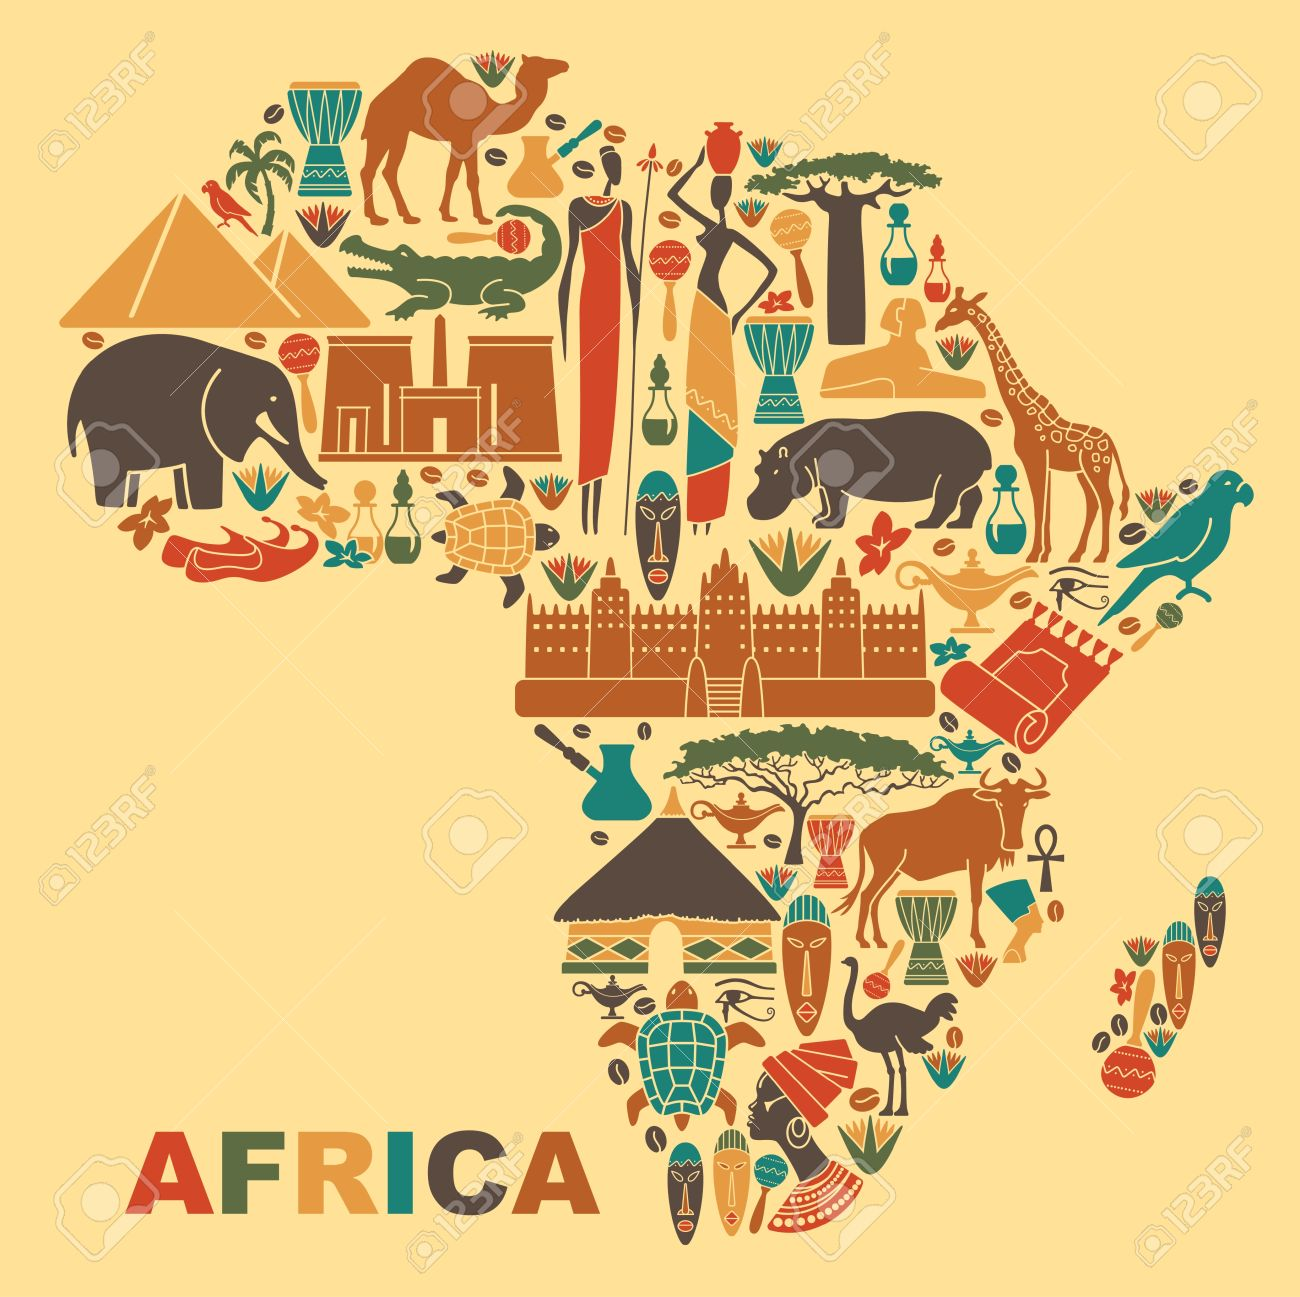 Symbols Of Nature, Culture And Architecture Of Africa In The